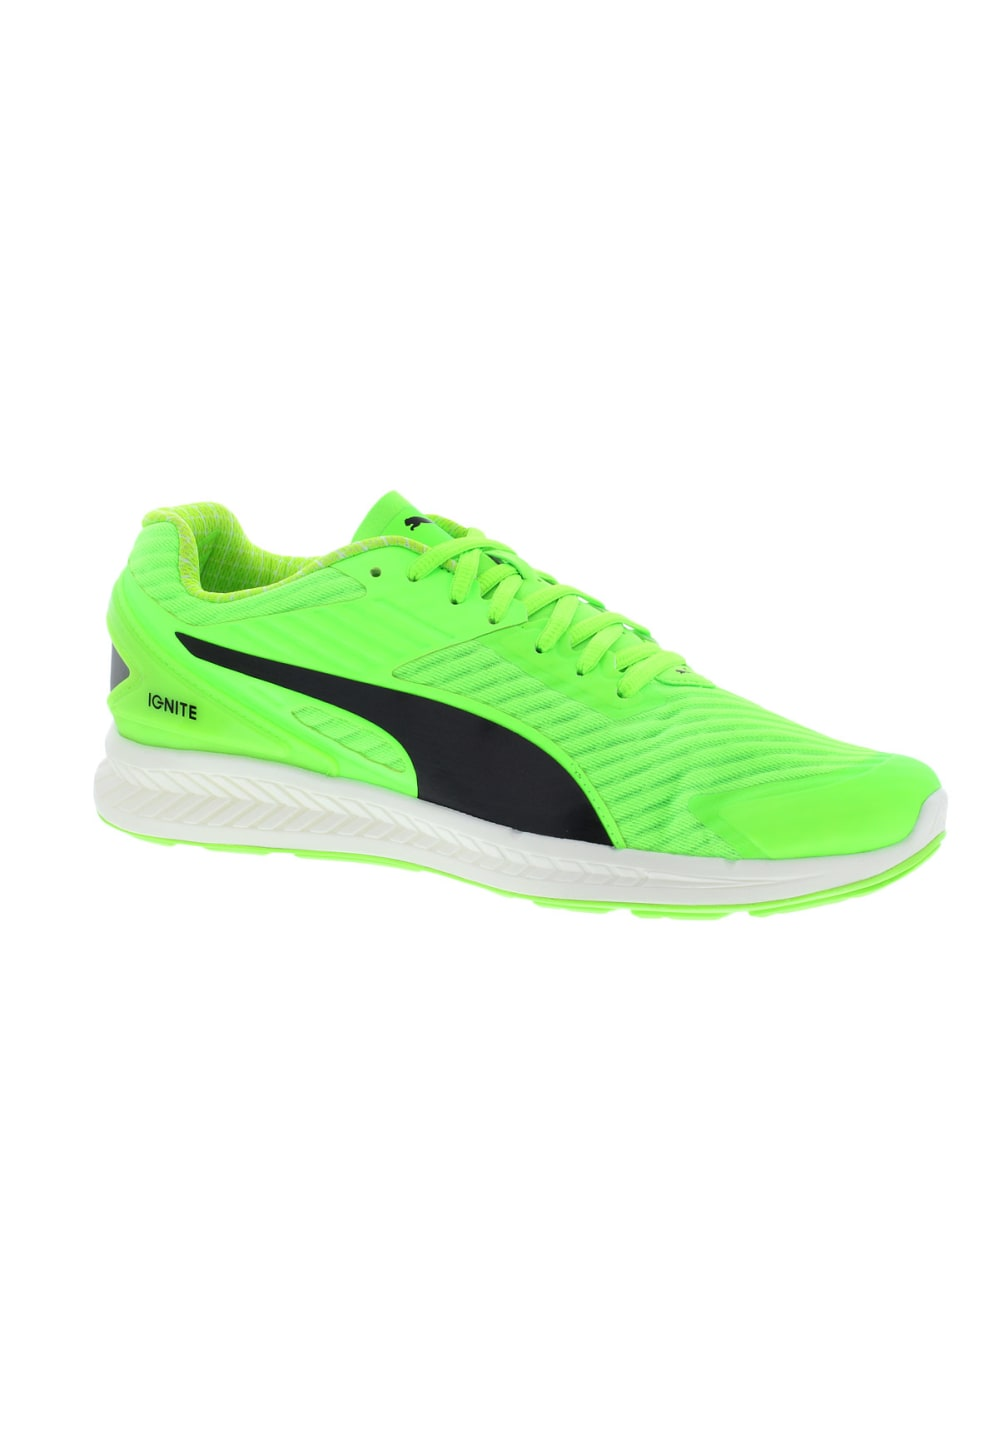 3151221c Puma IGNITE v2 PWRCOOL - Running shoes for Men - Green